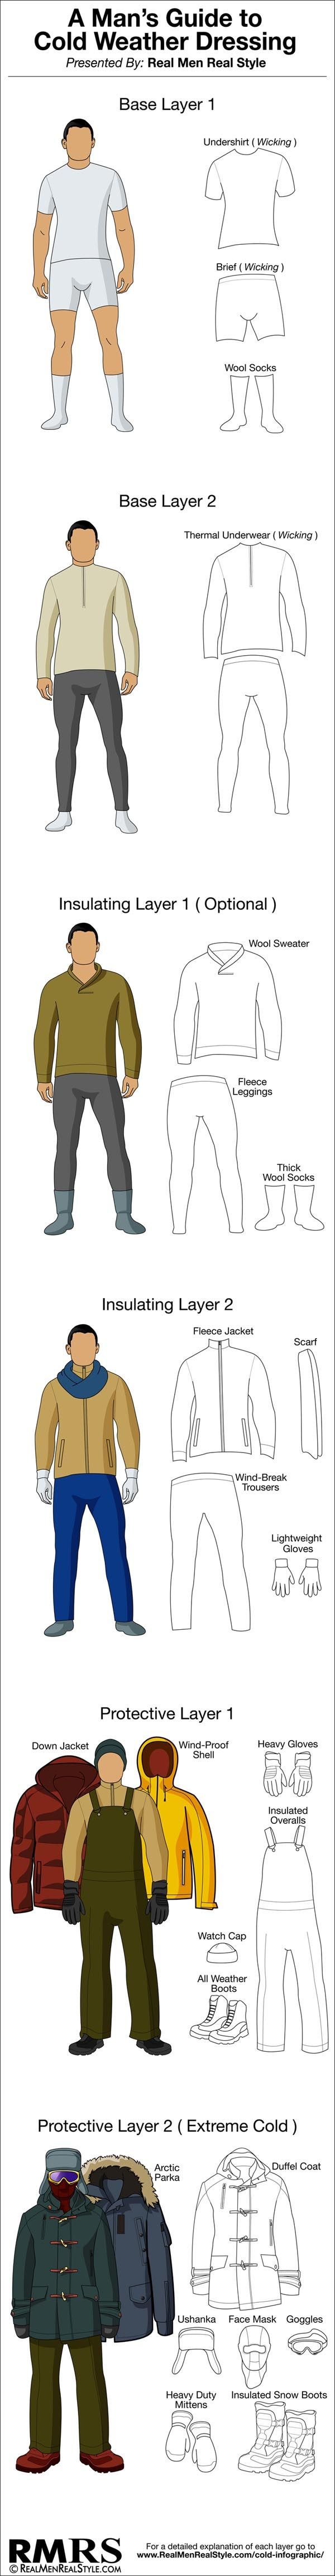 How To Dress Warm In Cold Weather Infographic (via @Antonio Covelo Centeno)